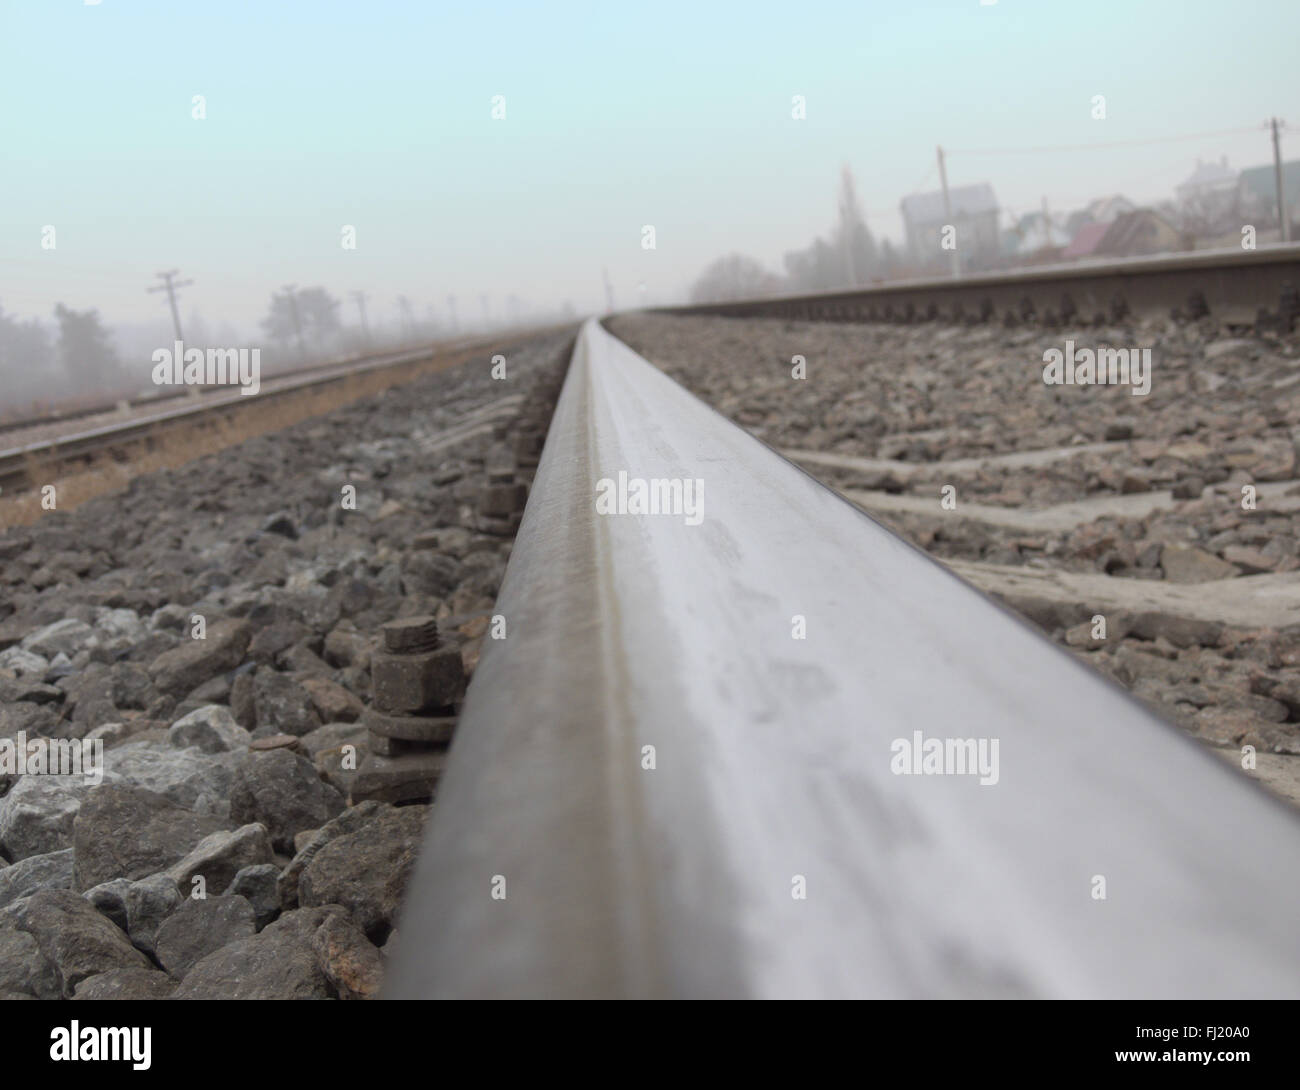 Rails, stretching to the horizon, photographed by a camera, placed on the rail head - Stock Image